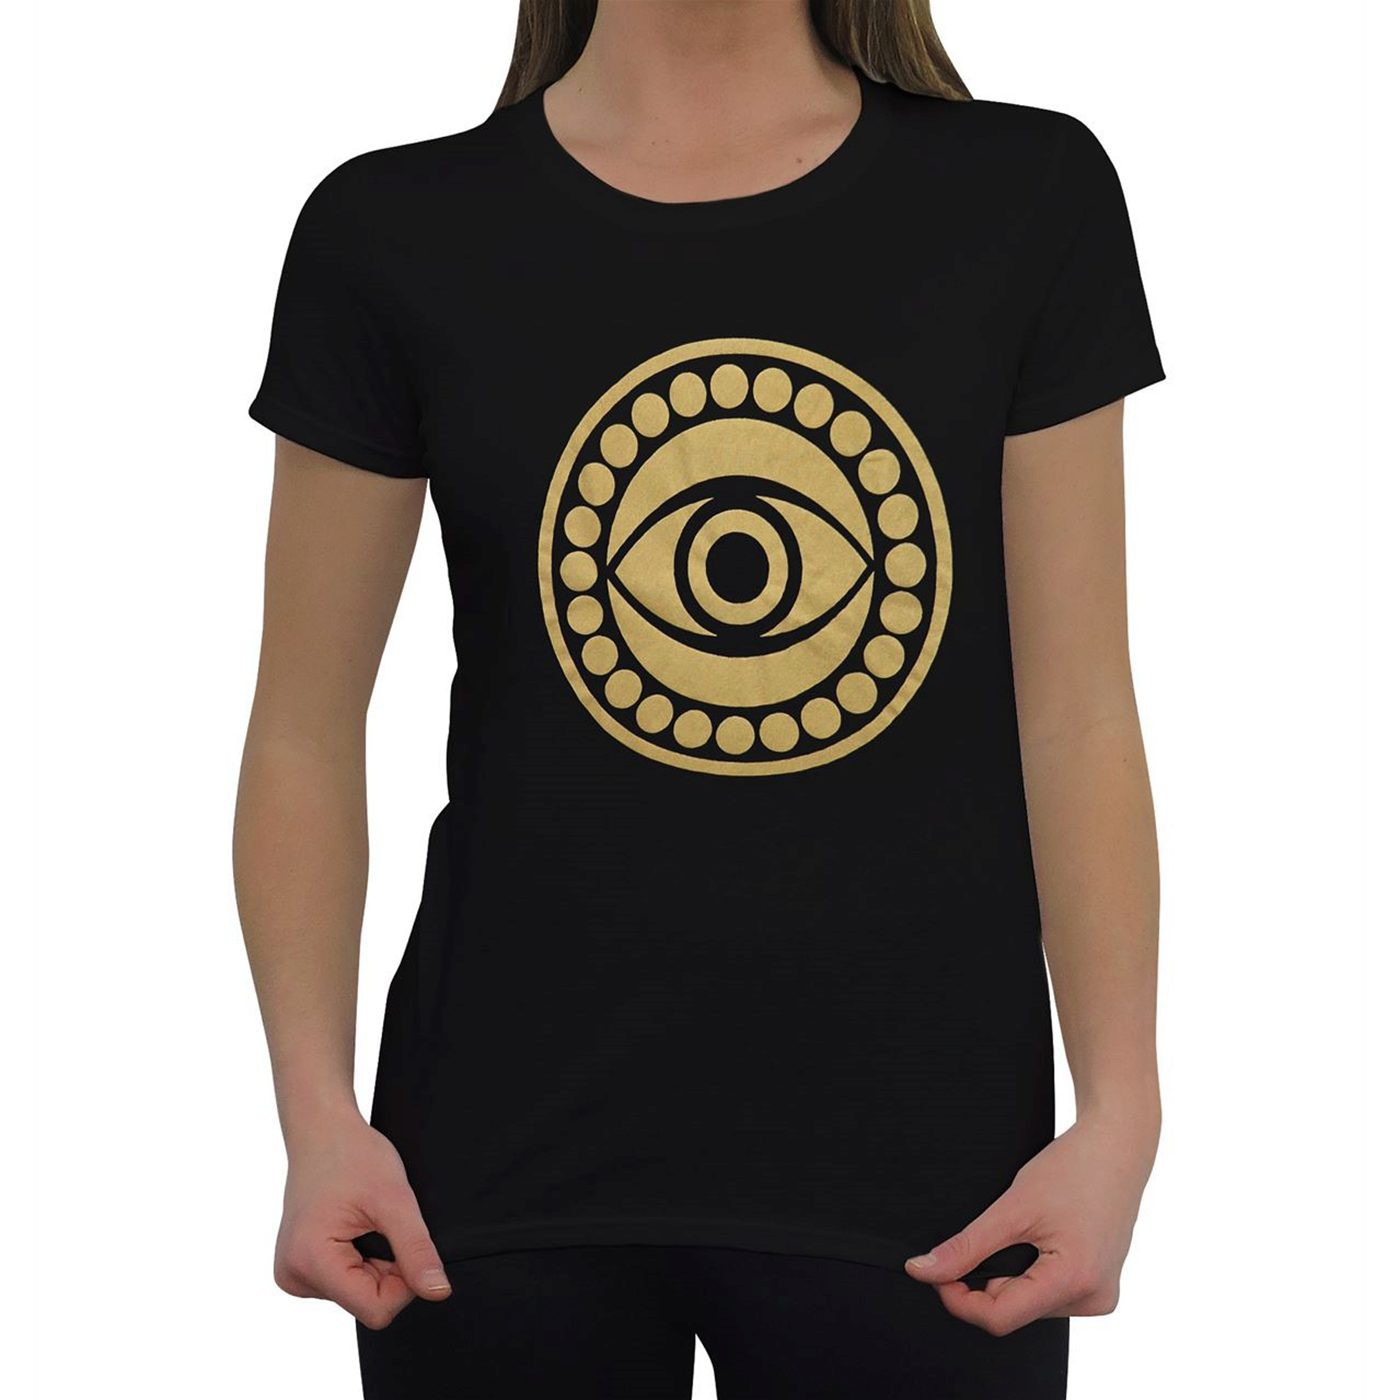 Dr. Strange Eye of Agamotto Women's T-Shirt